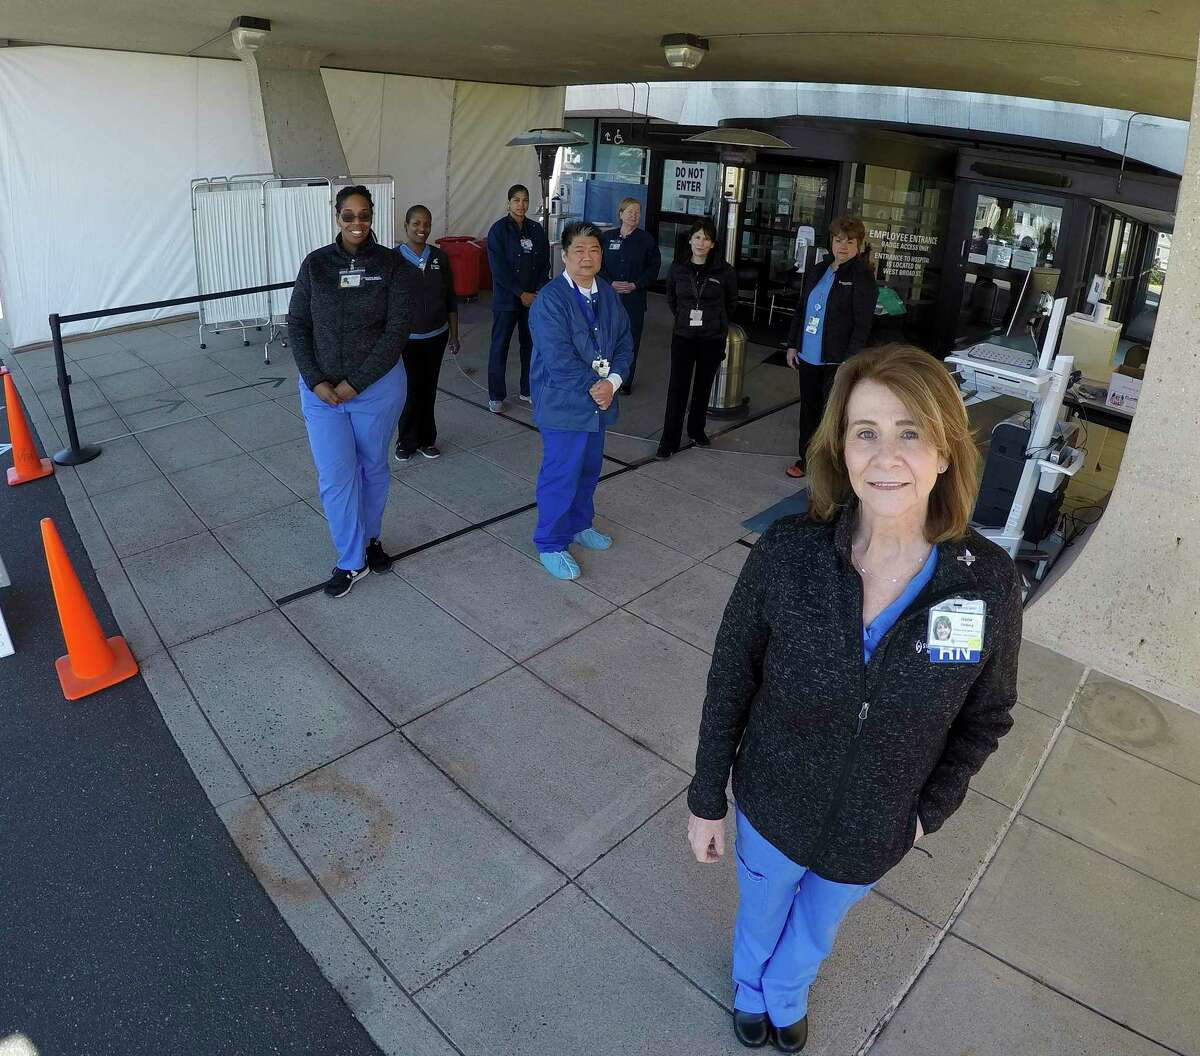 At right, Irene Furlong, Director of Clinical Services at Stamford Health Medical Group, is photographed on March 26, 2020 with her team of medical personel. Furlong is overseeing the drive-thru COVID-19 testing facility that has been set up at Stamford Hospital.